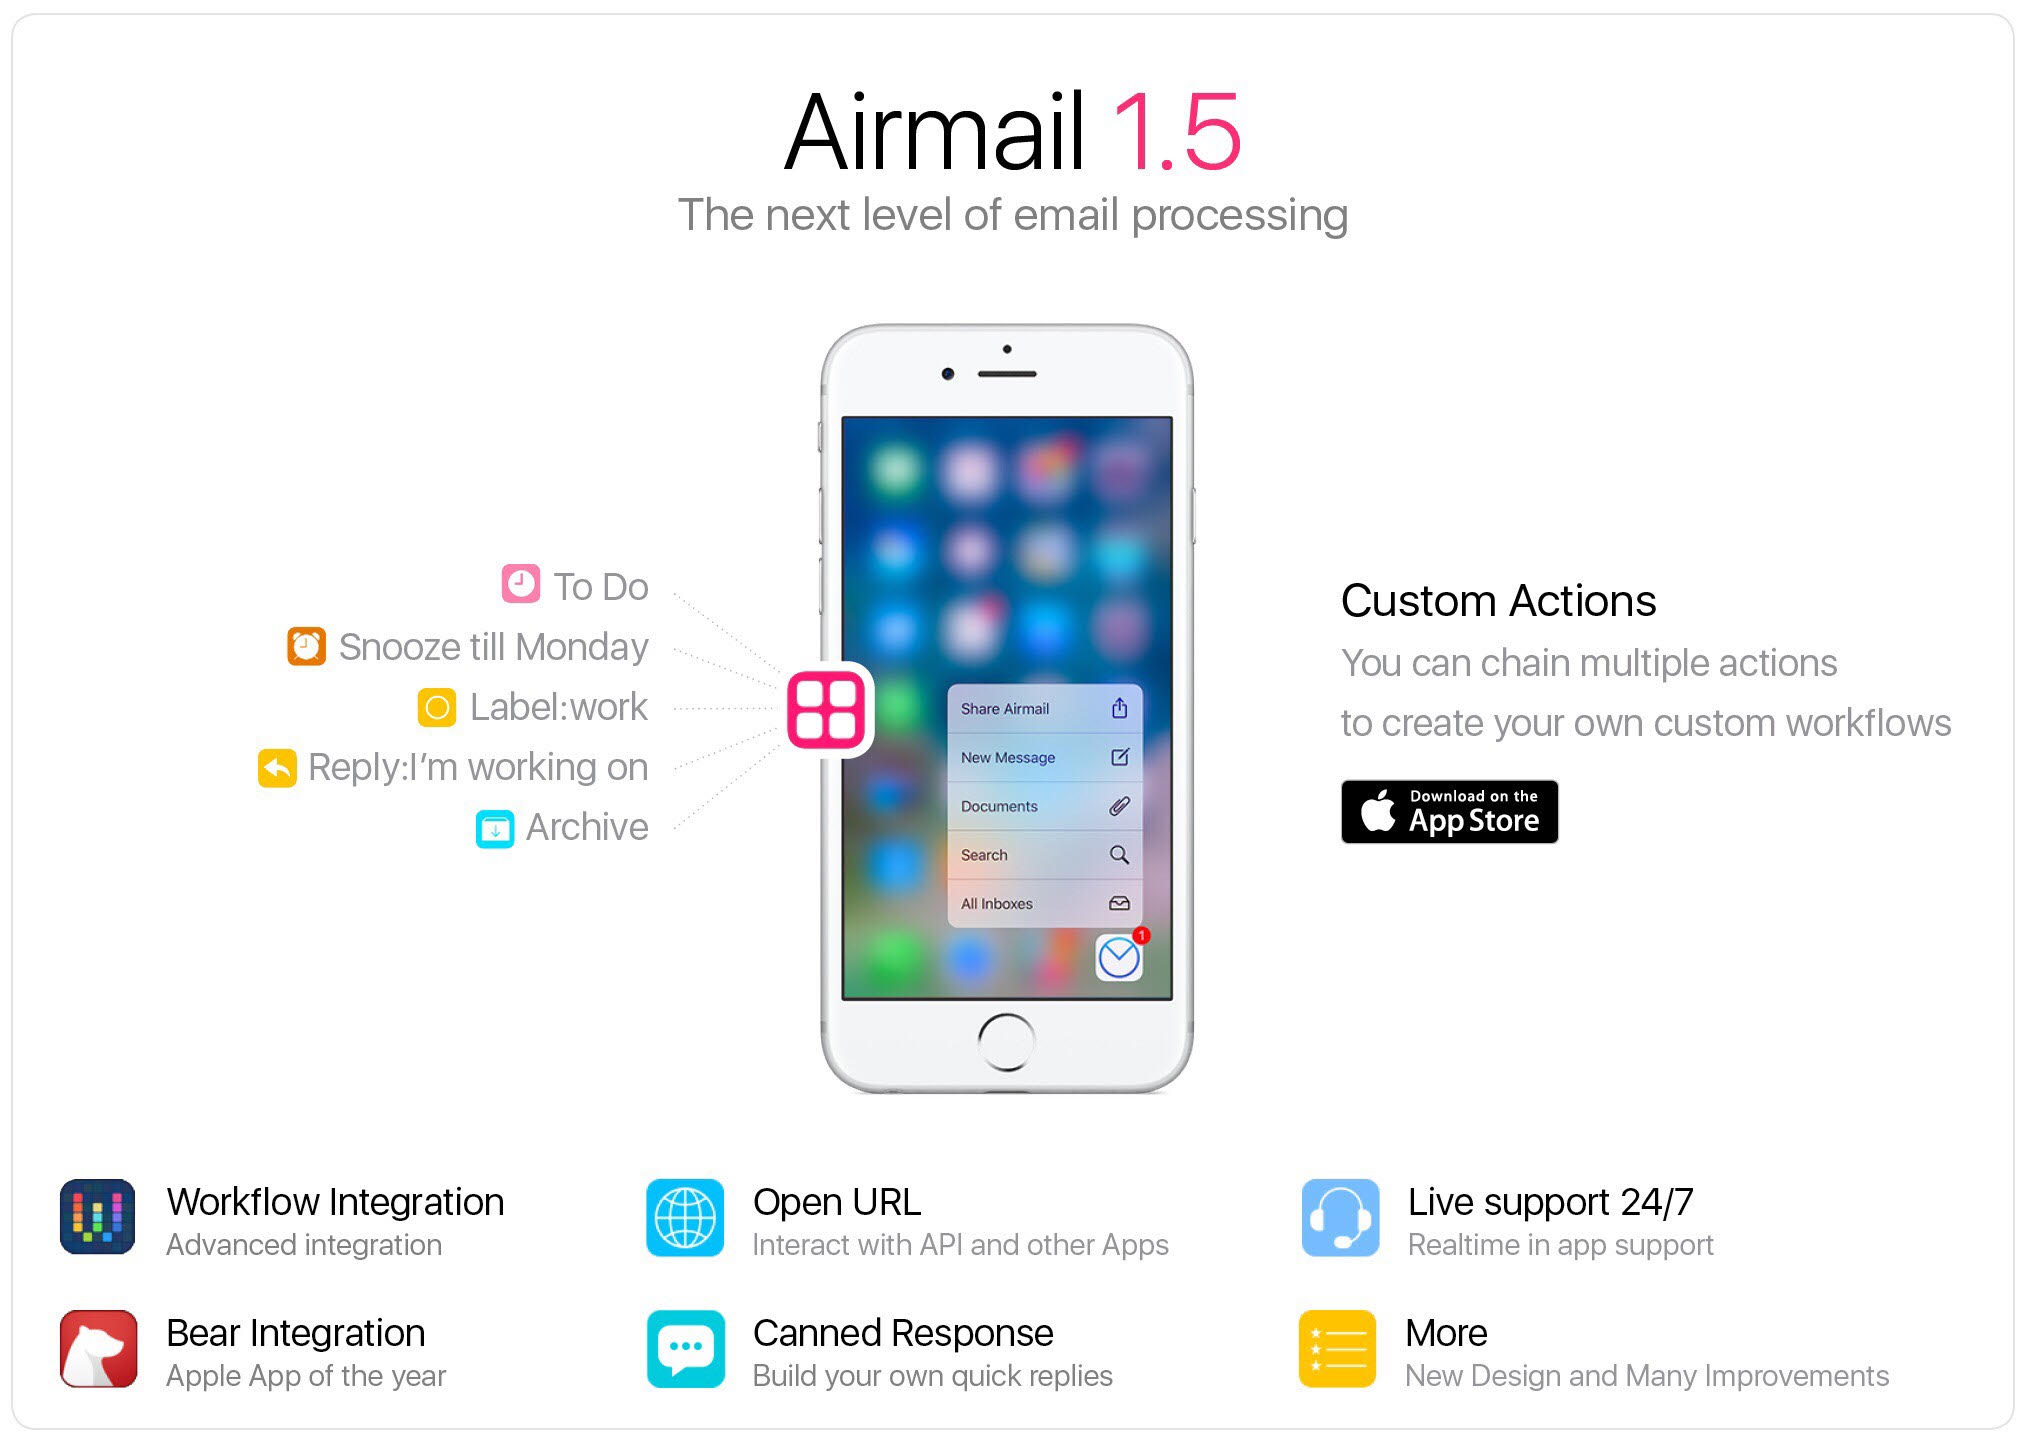 Airmail 1.5 for iOS Offers New Custom Actions, Workflow Integration, Much More